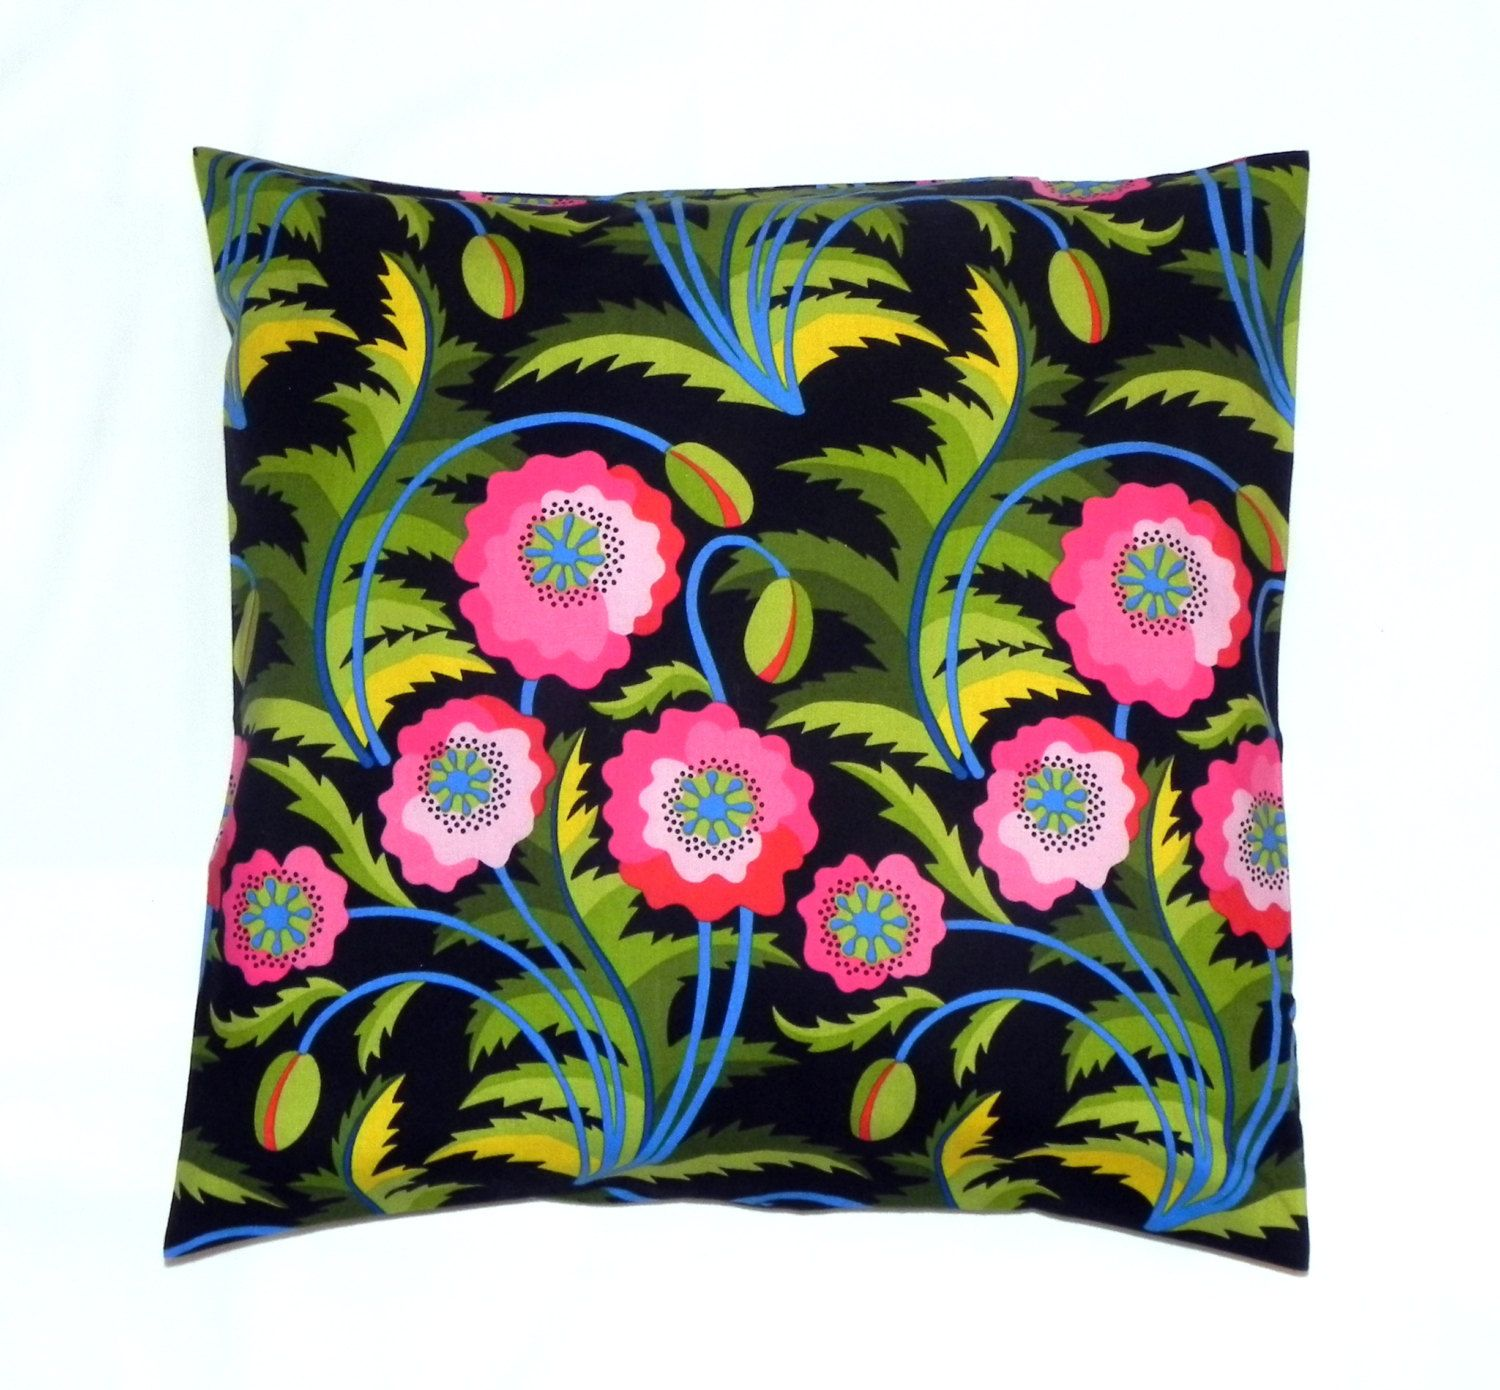 Best Ways To Redecorate With Green: Decorative Pillow Covers. Set Of Two 16x16. Black, Pink